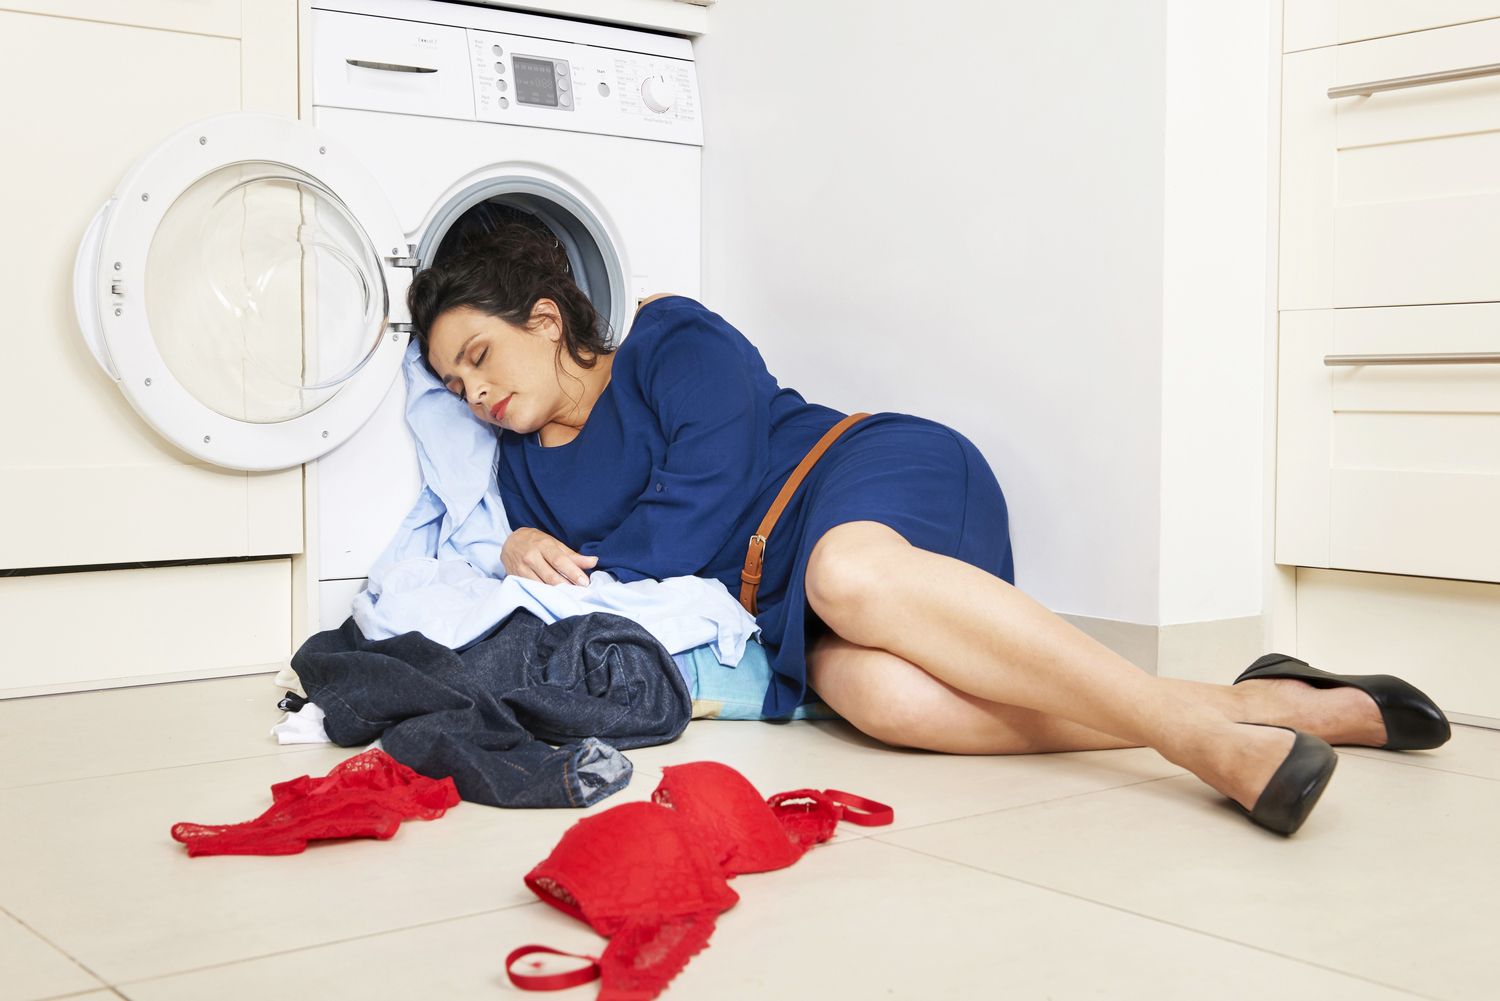 Shoot+for+ResMed+'Do+it+in+bed'+campaign+'Dirty+Washing x'.jpg